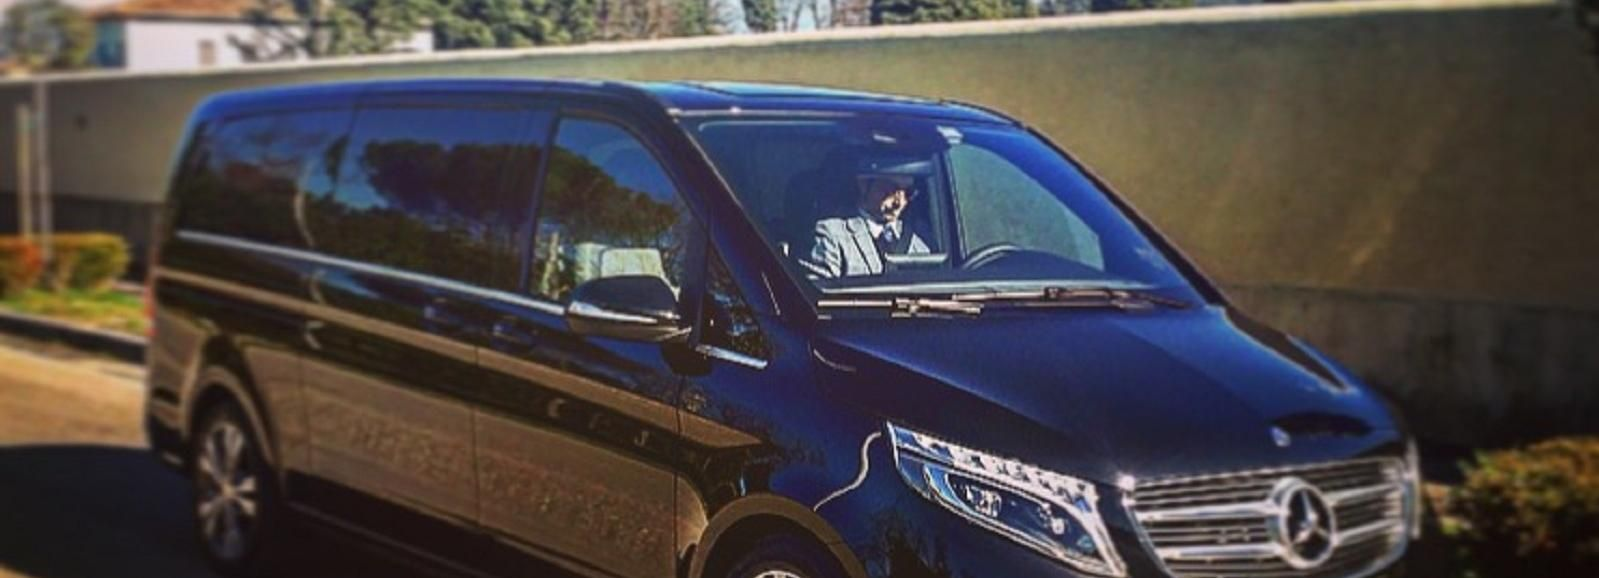 City Hotels to Florence Airport: Private Transfer